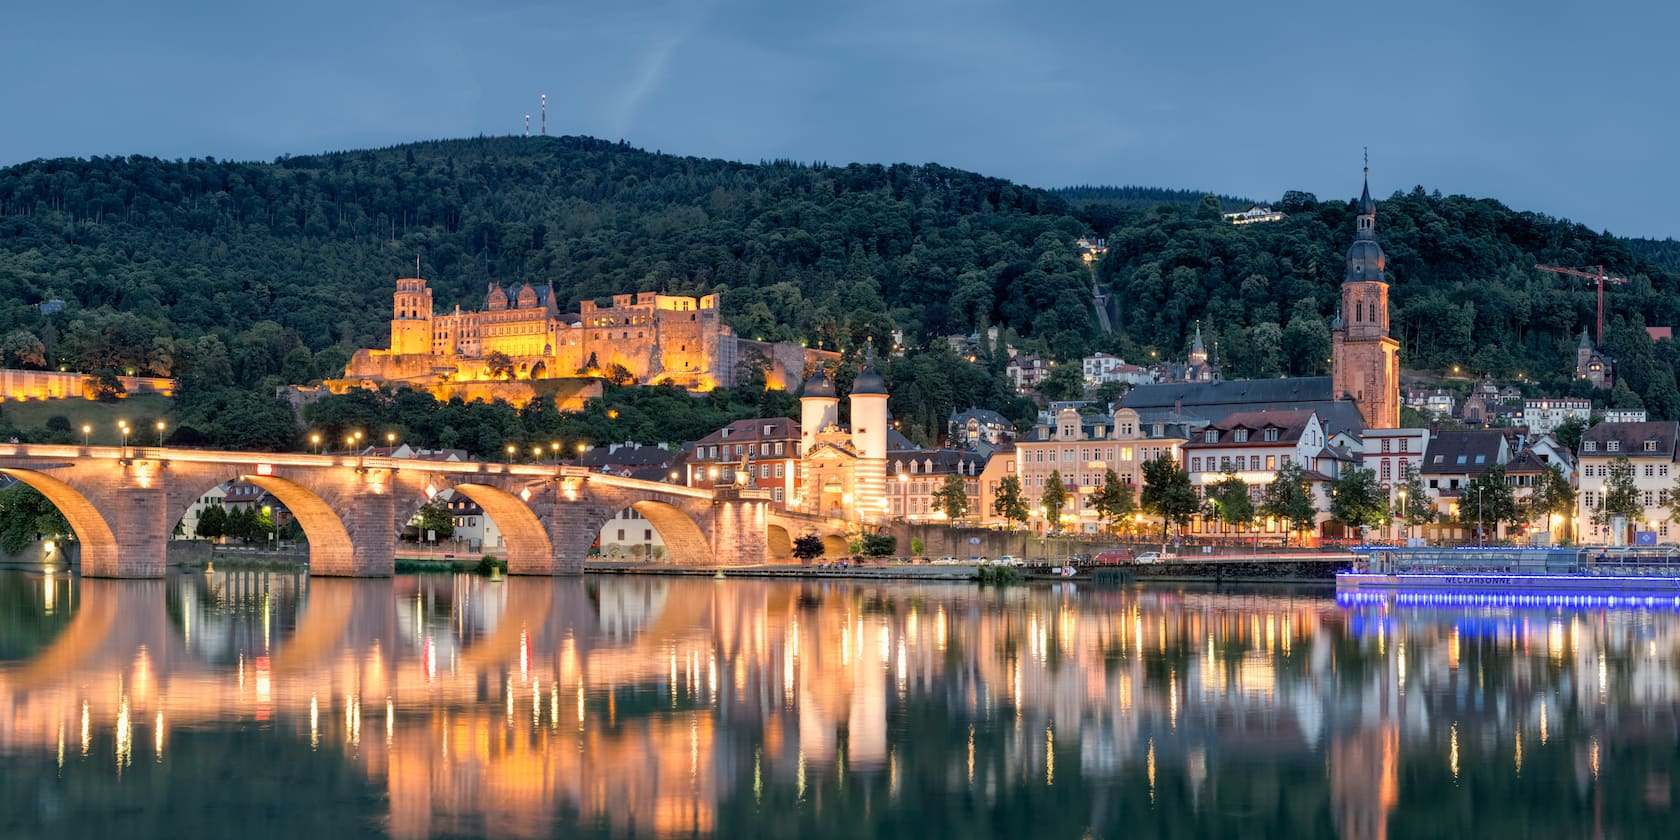 Heildelberg Castle stands between a tree-lined mountain and and a stone bridge, which is reflected in the Rhine River